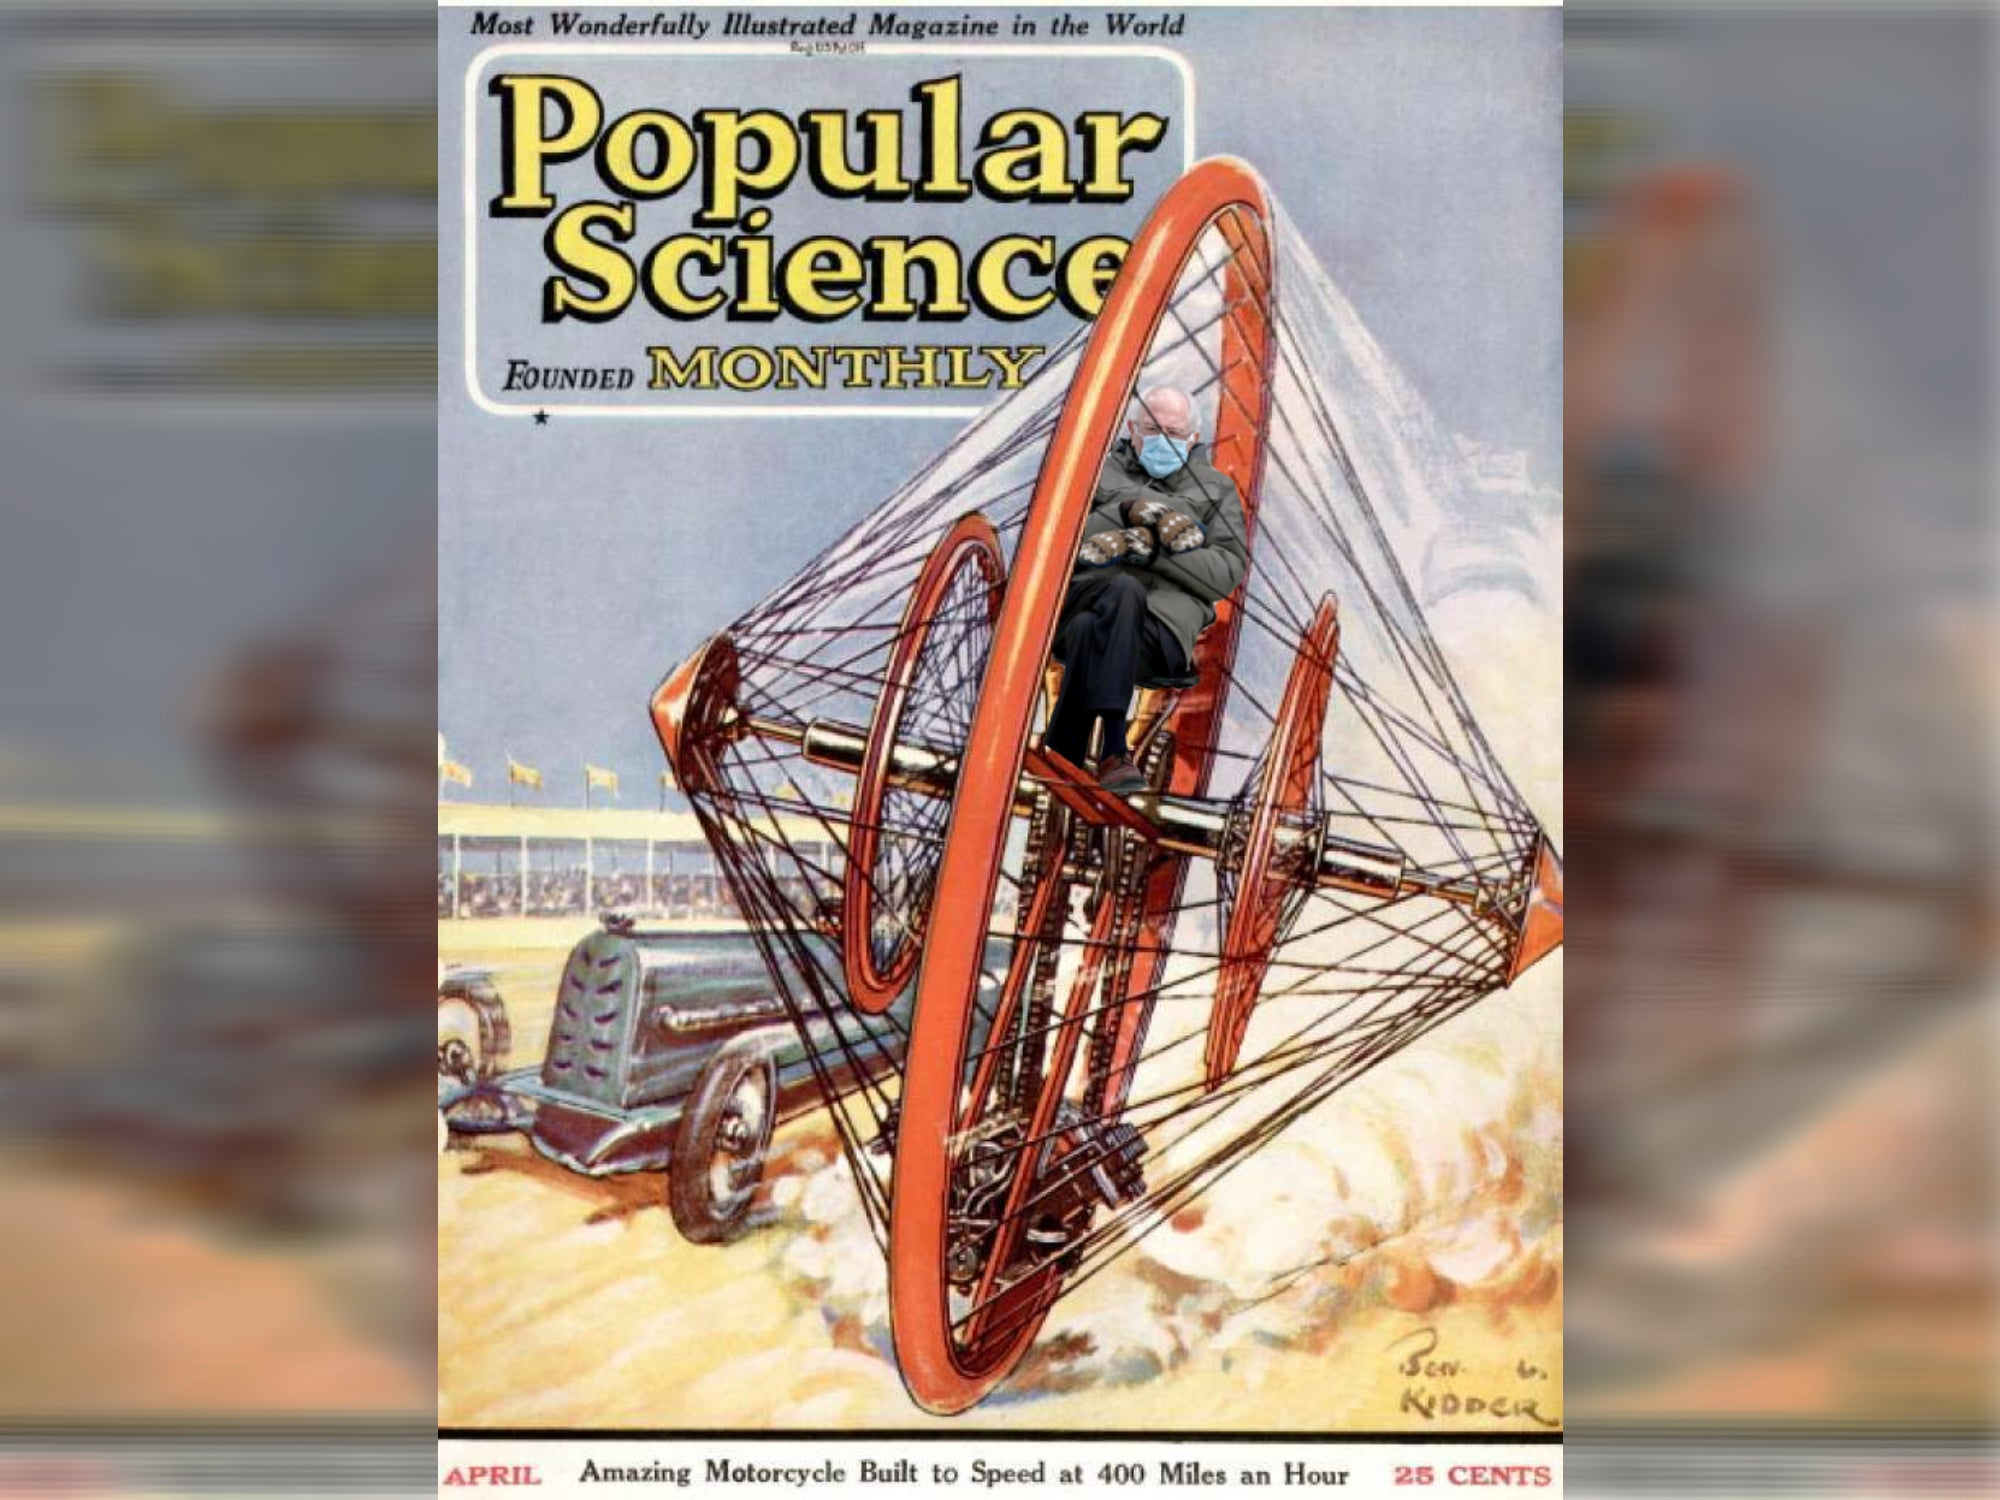 US Senator Bernie Sanders edited into a vintage Popular Science magazine cover to look like he's driving an experimental single-wheel motorcycle.